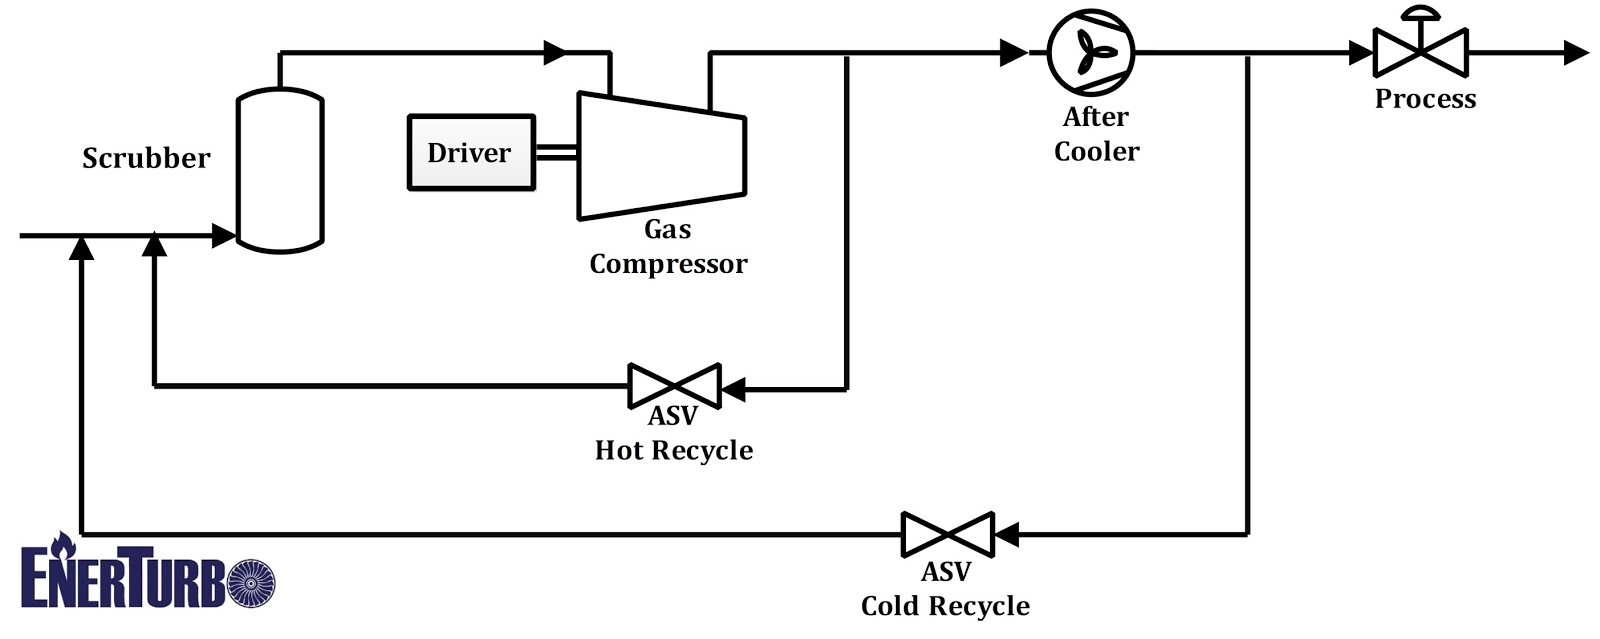 Compressor Station Flow Diagram Process Natural Gas Machinery In A Nutshell Figure 1